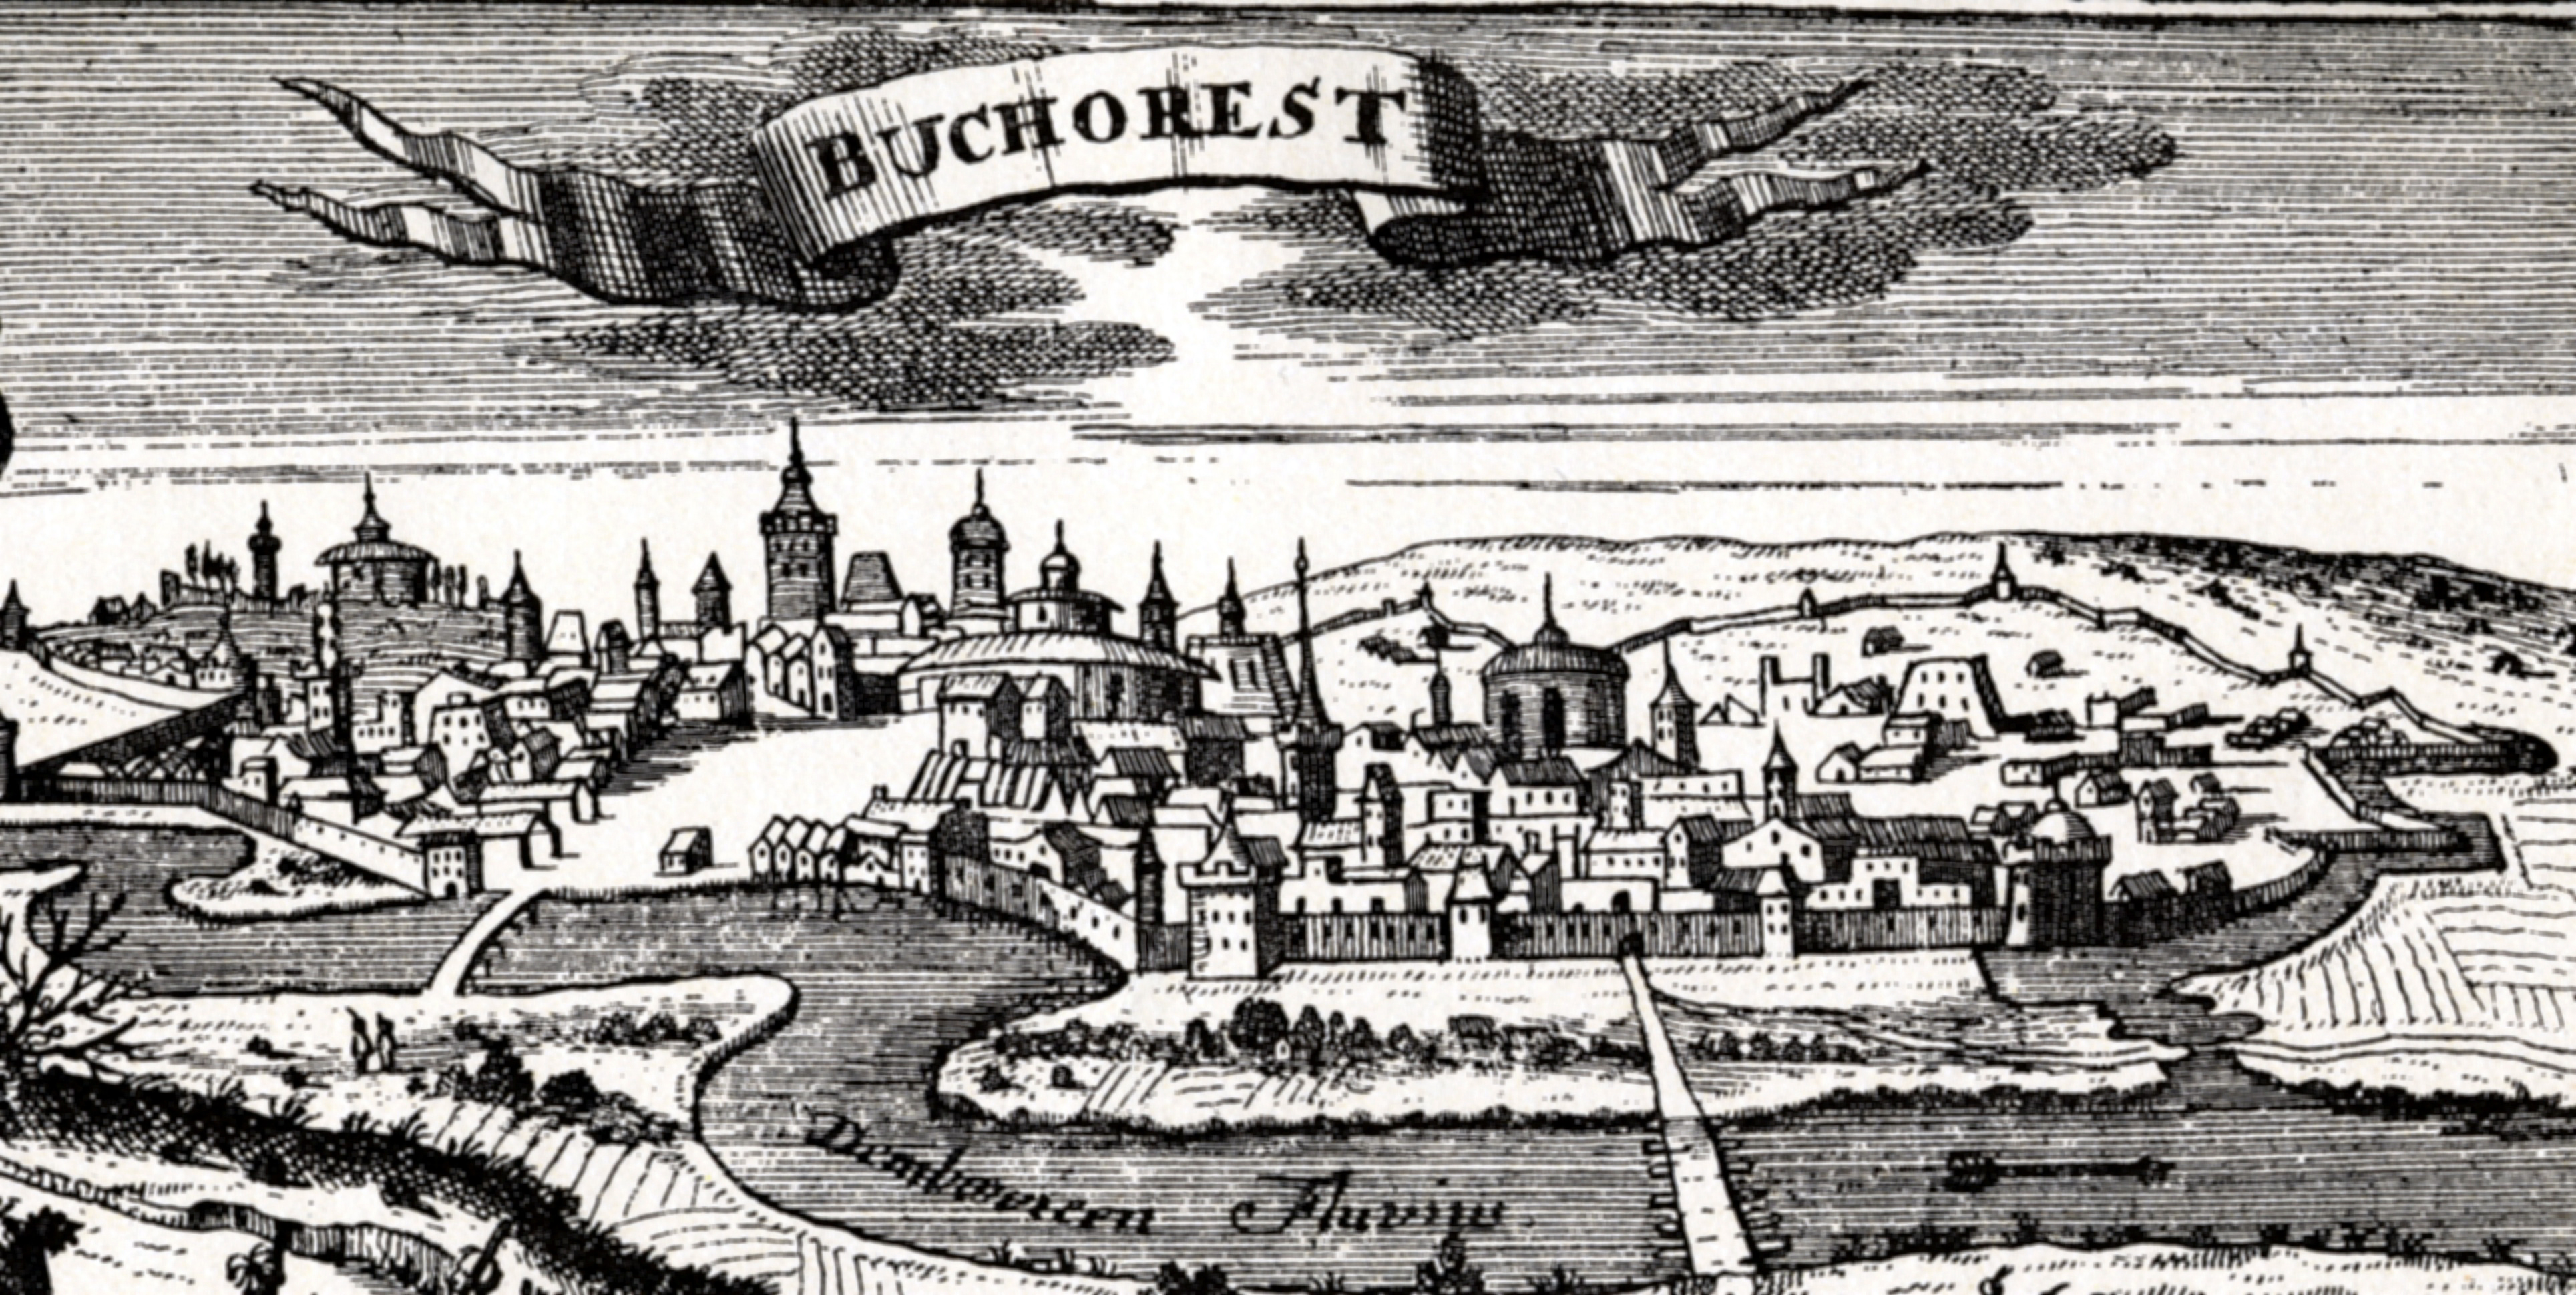 File:Bucharest, woodcut, published in Leipzig in 1717.jpg